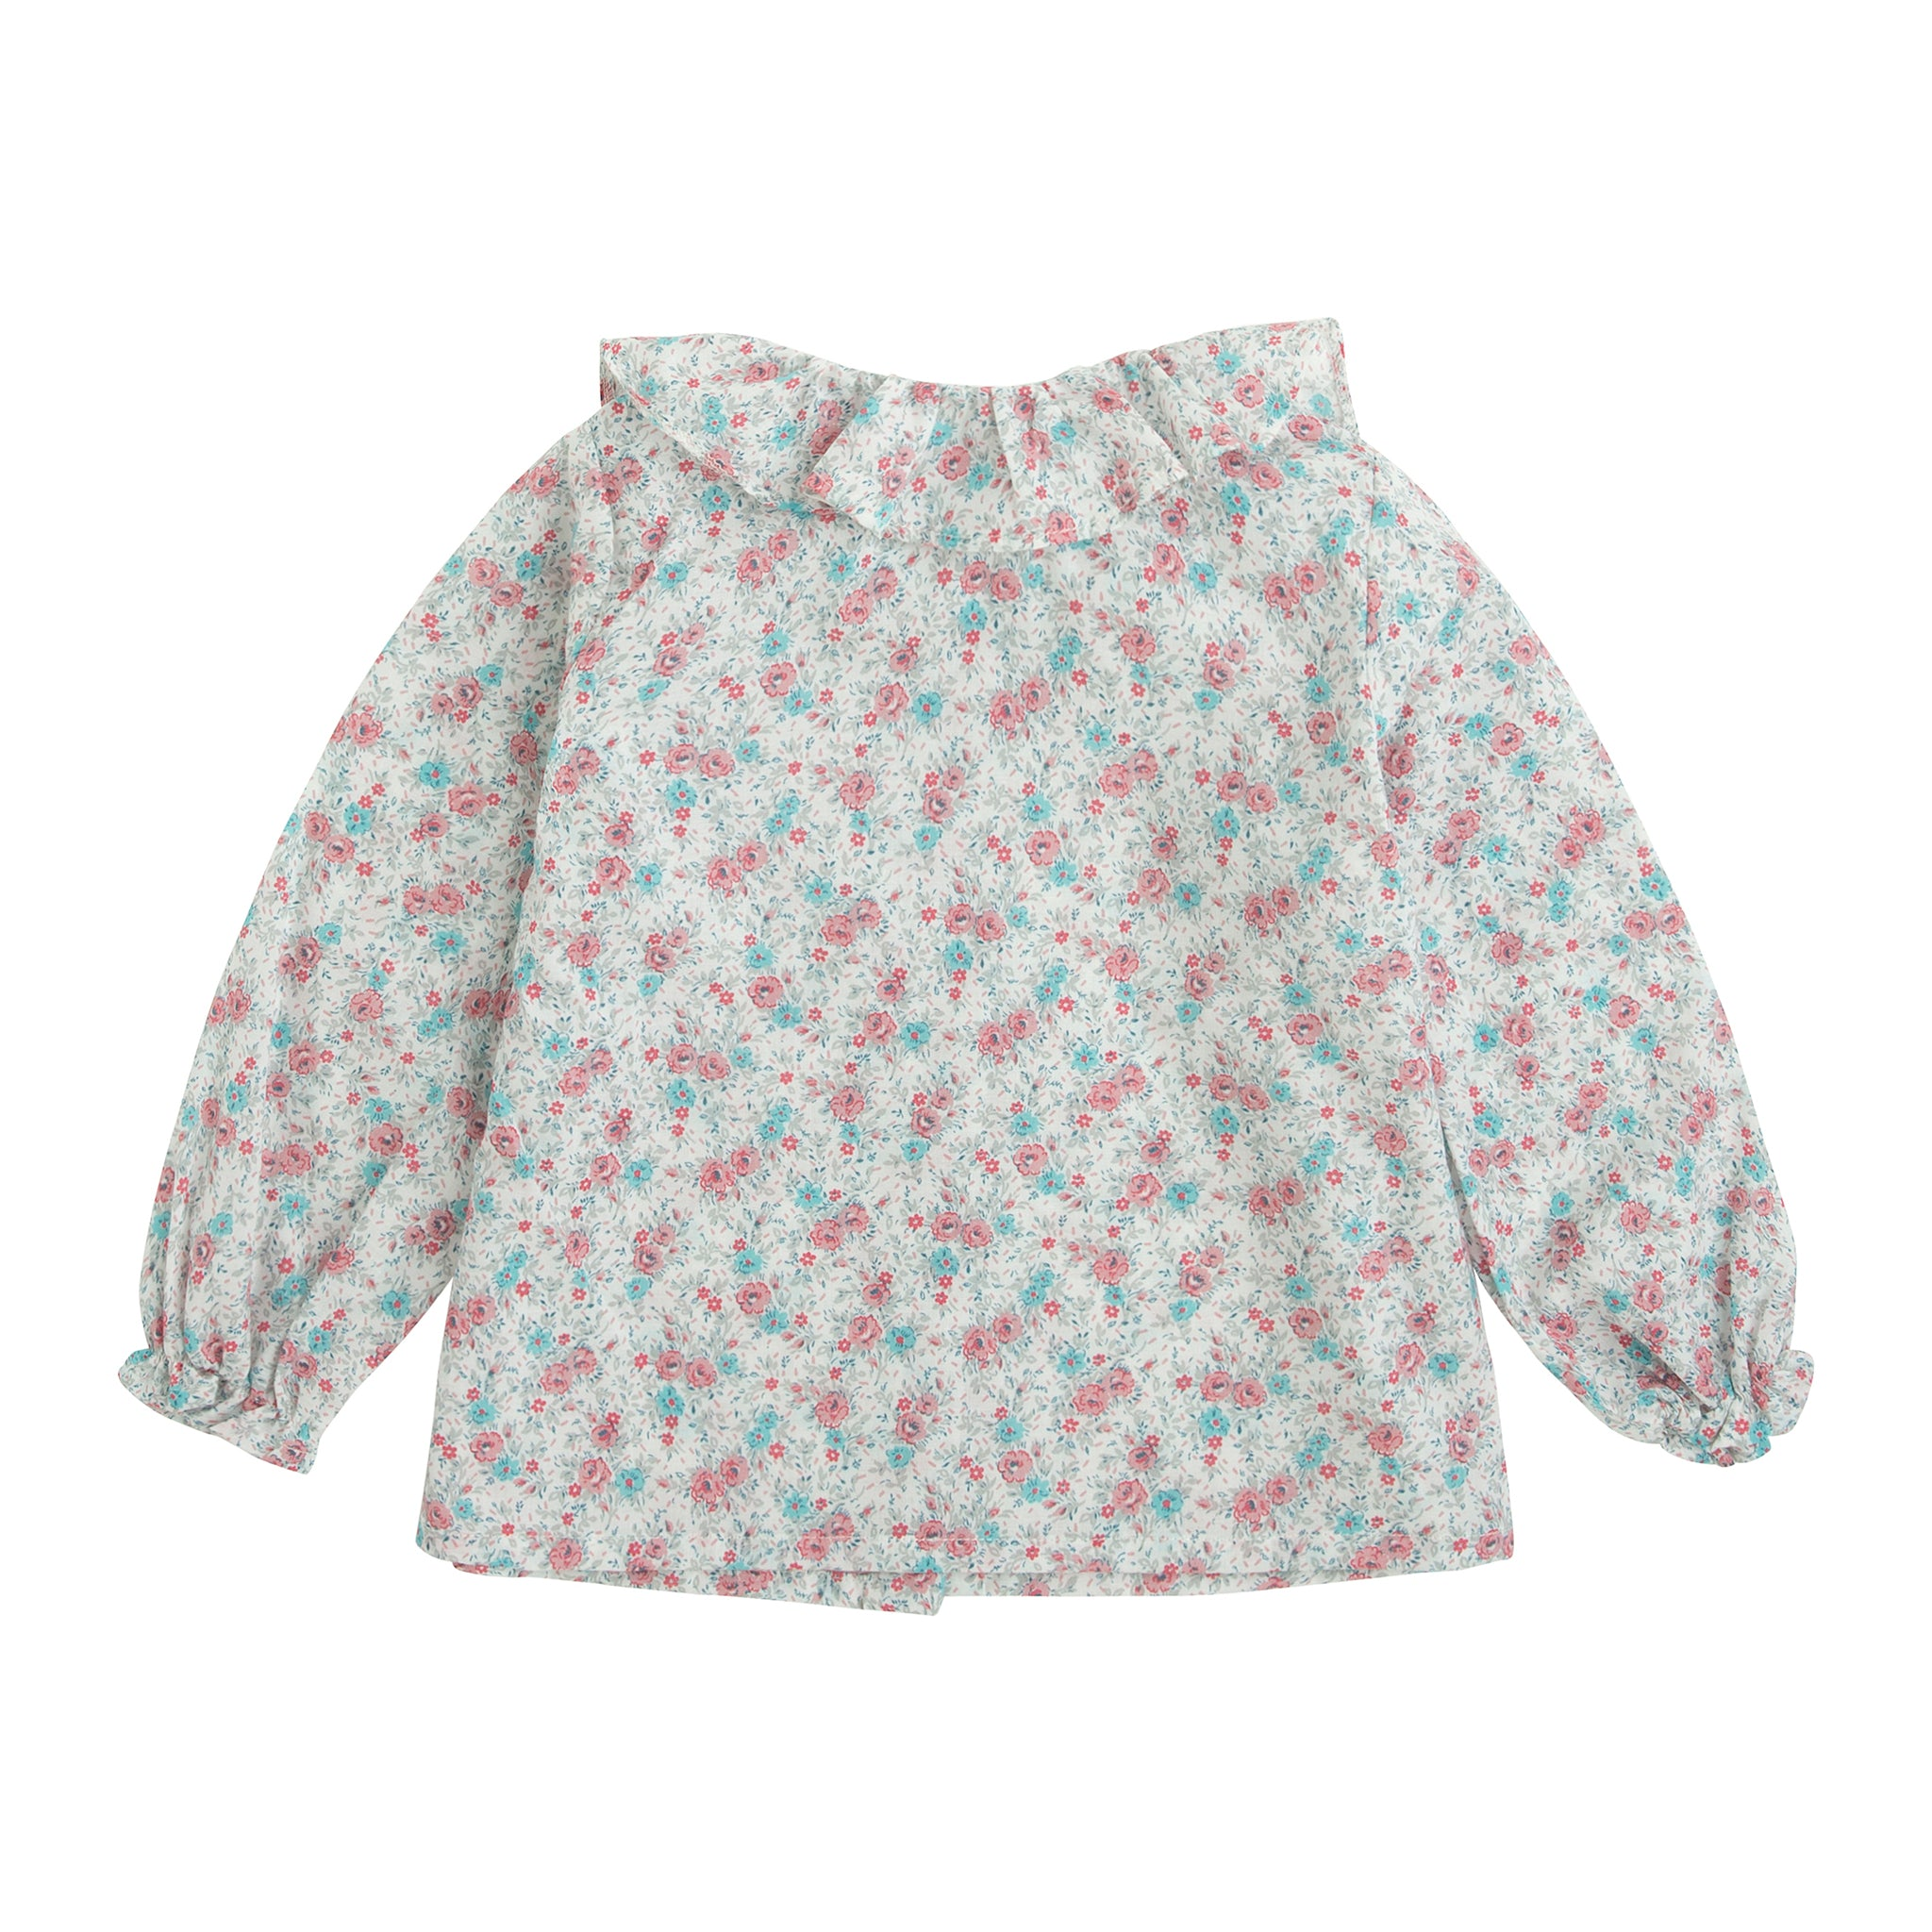 baby girl blouse in floral print with ruffle collar and wooden buttons down the back